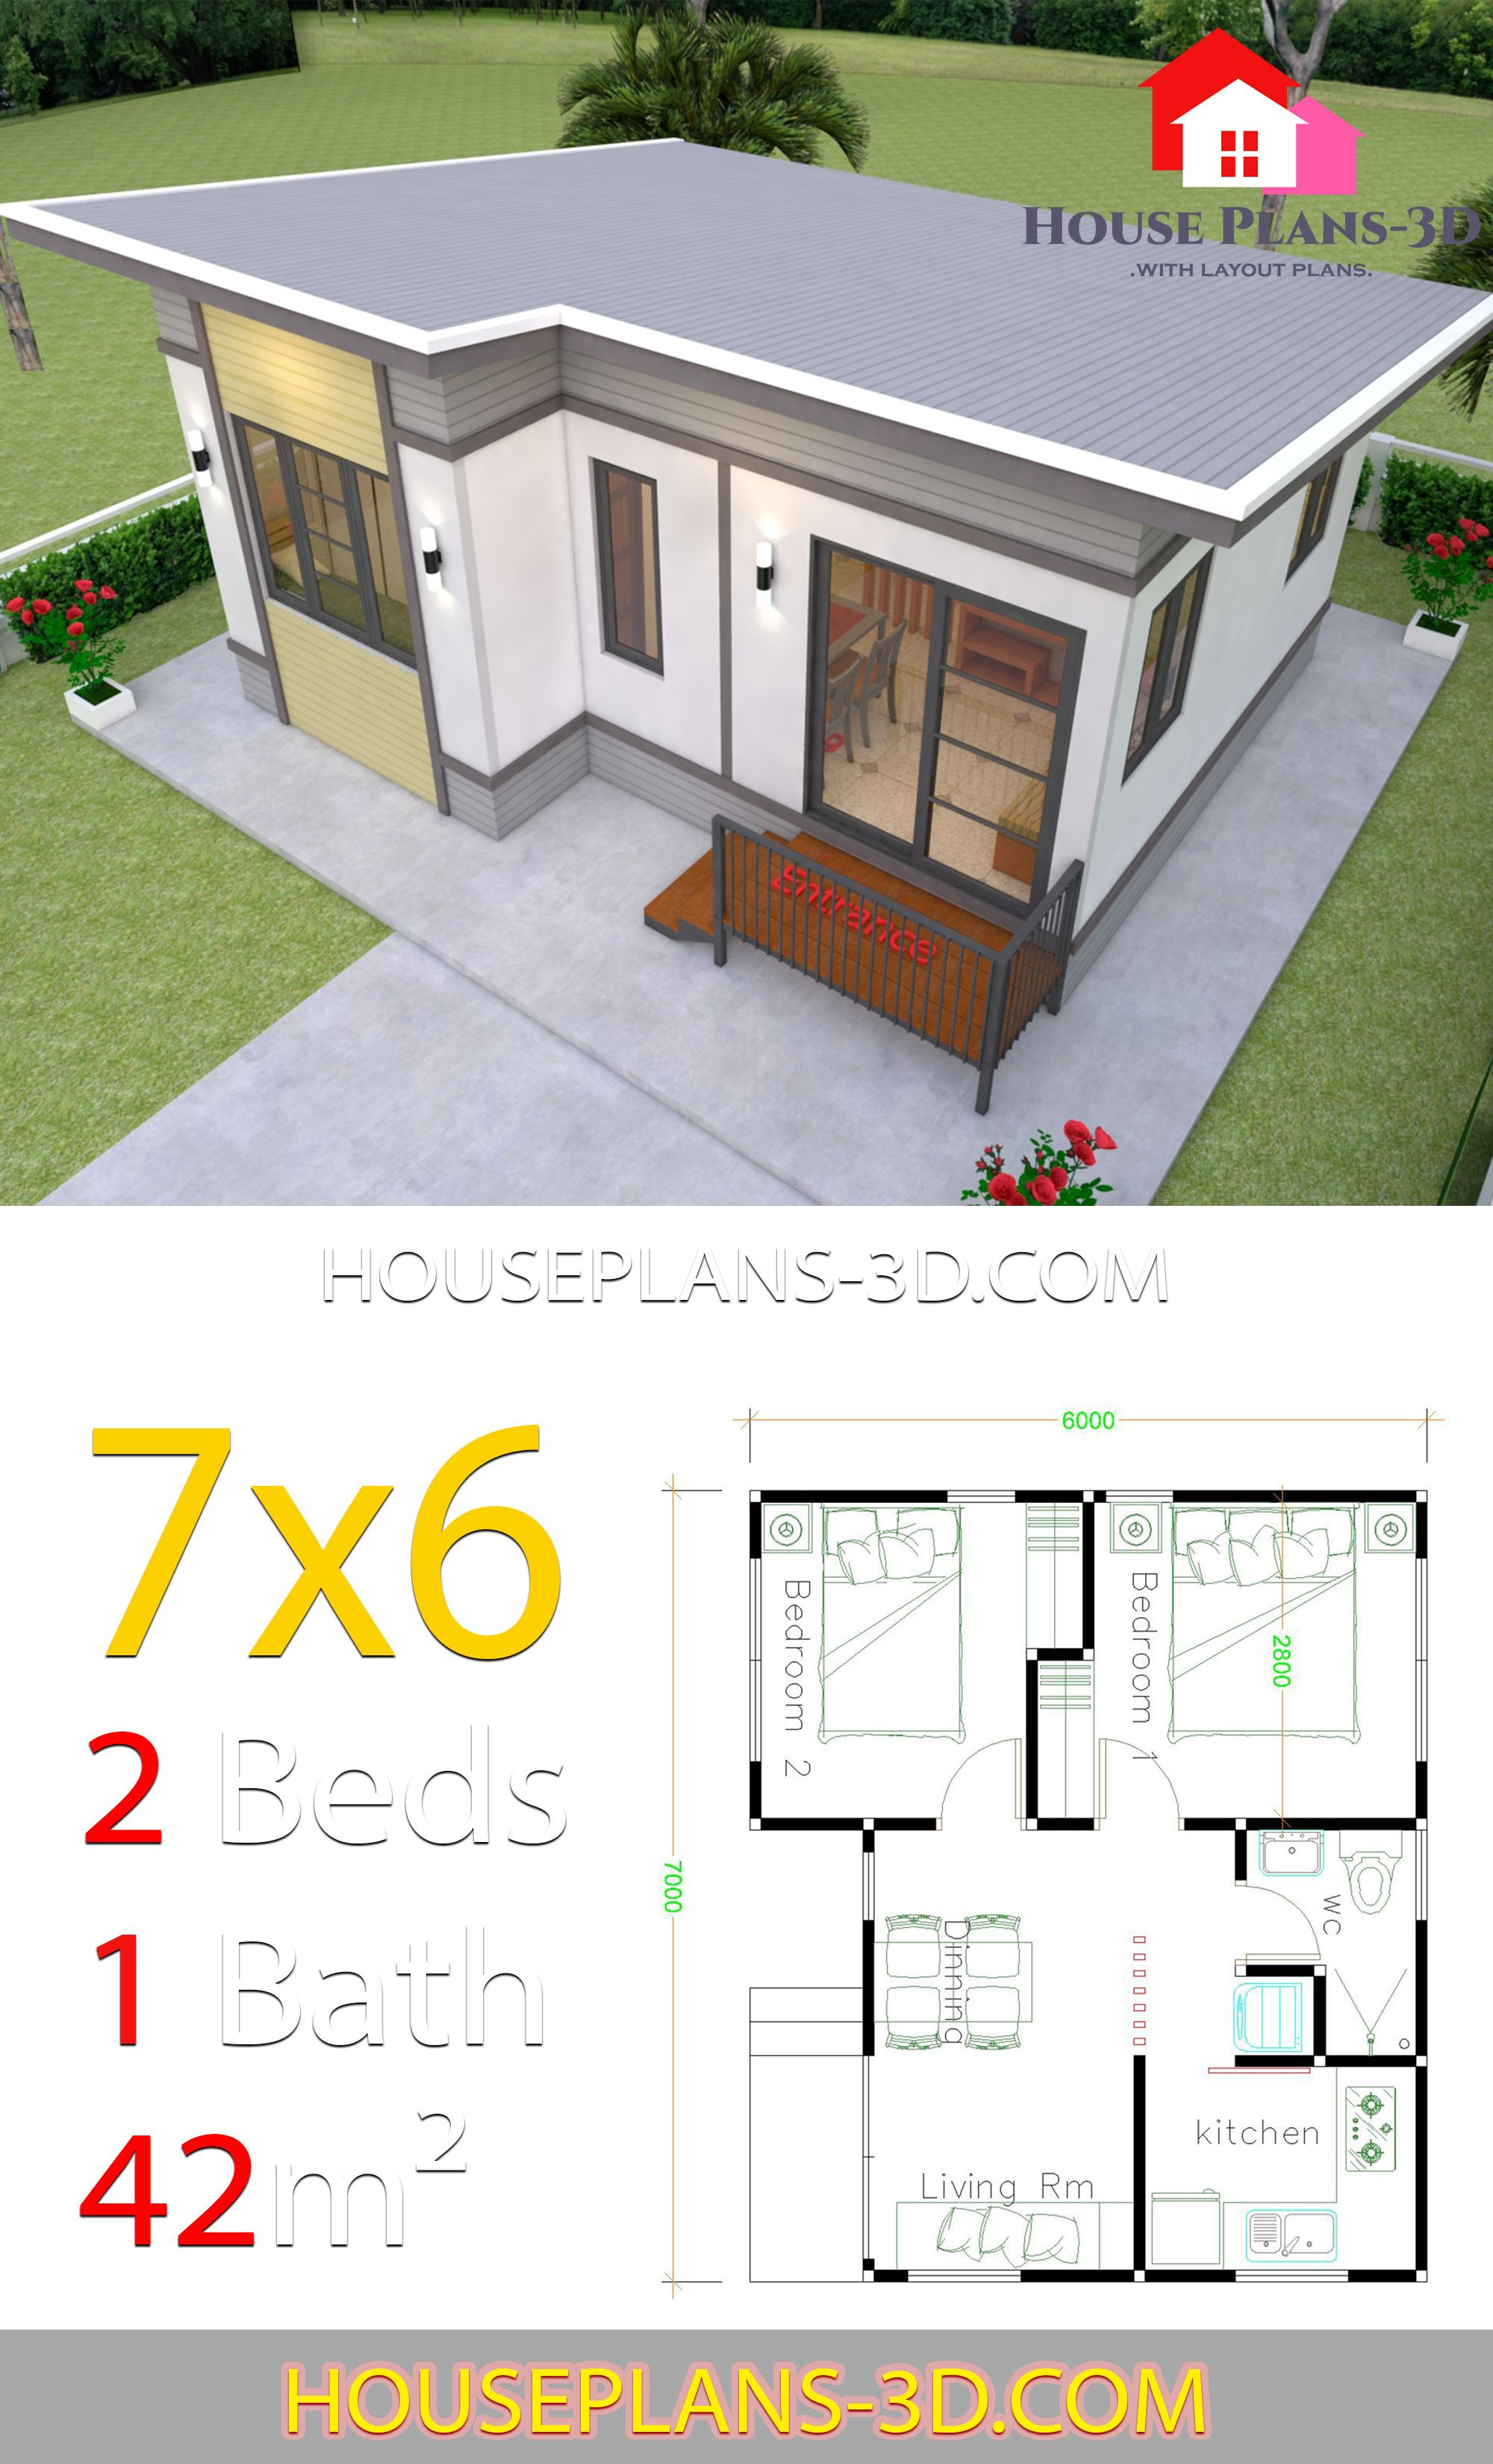 House Pictures and Plans Unique Small House Plans 7x6 with 2 Bedrooms House Plans 3d